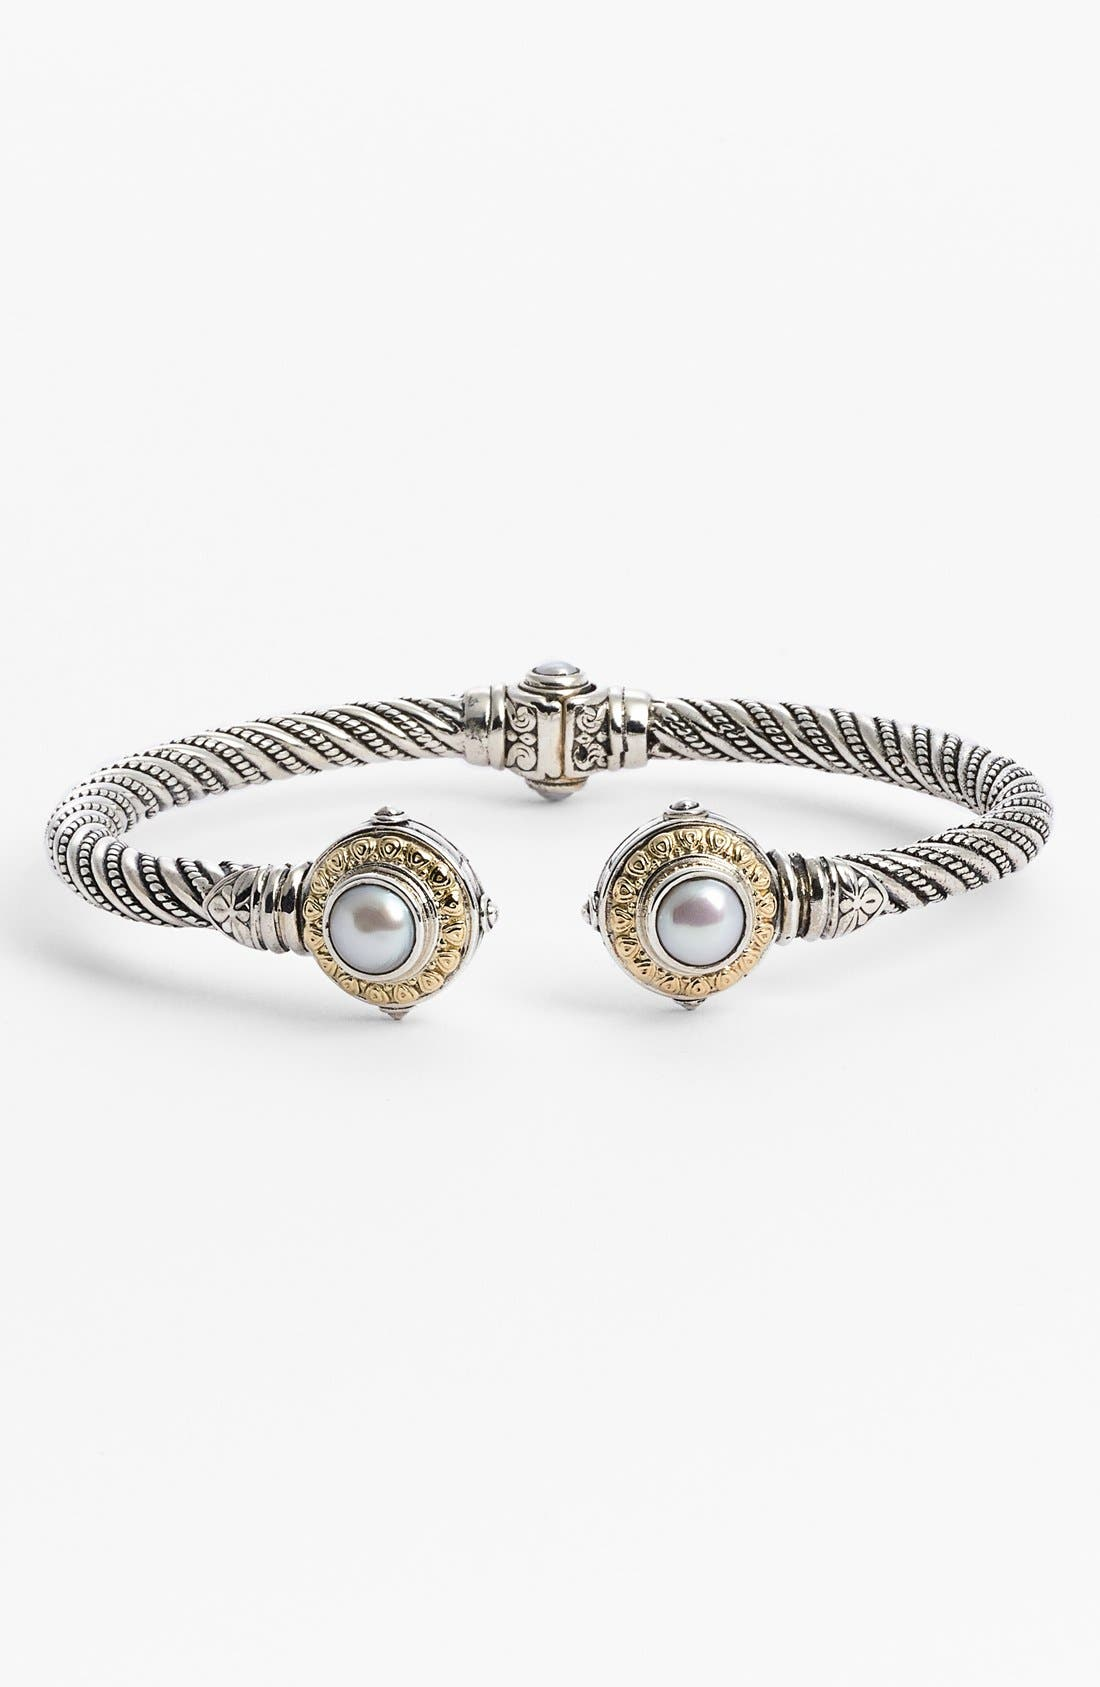 'Hermione' Hinged Cuff,                             Main thumbnail 1, color,                             Silver/ Gold